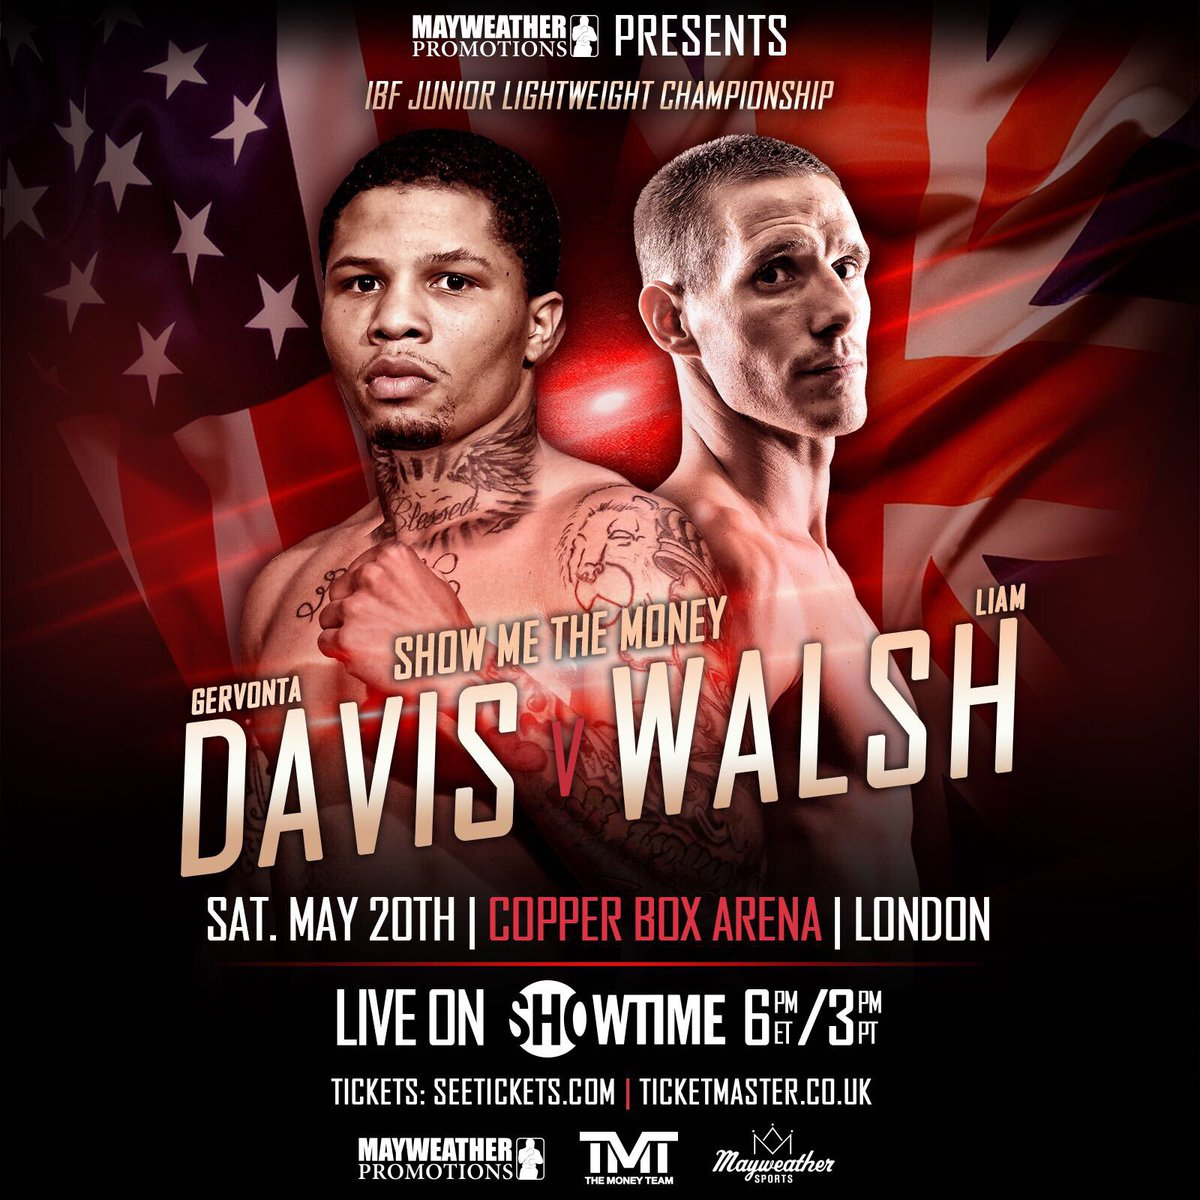 test Twitter Media - This Saturday, live on @Showtime 6pm EST/3pm PST, @Gervontaa will defend his title against Liam Walsh at the Cooperbox Arena in London. https://t.co/ksxrl7Xppv